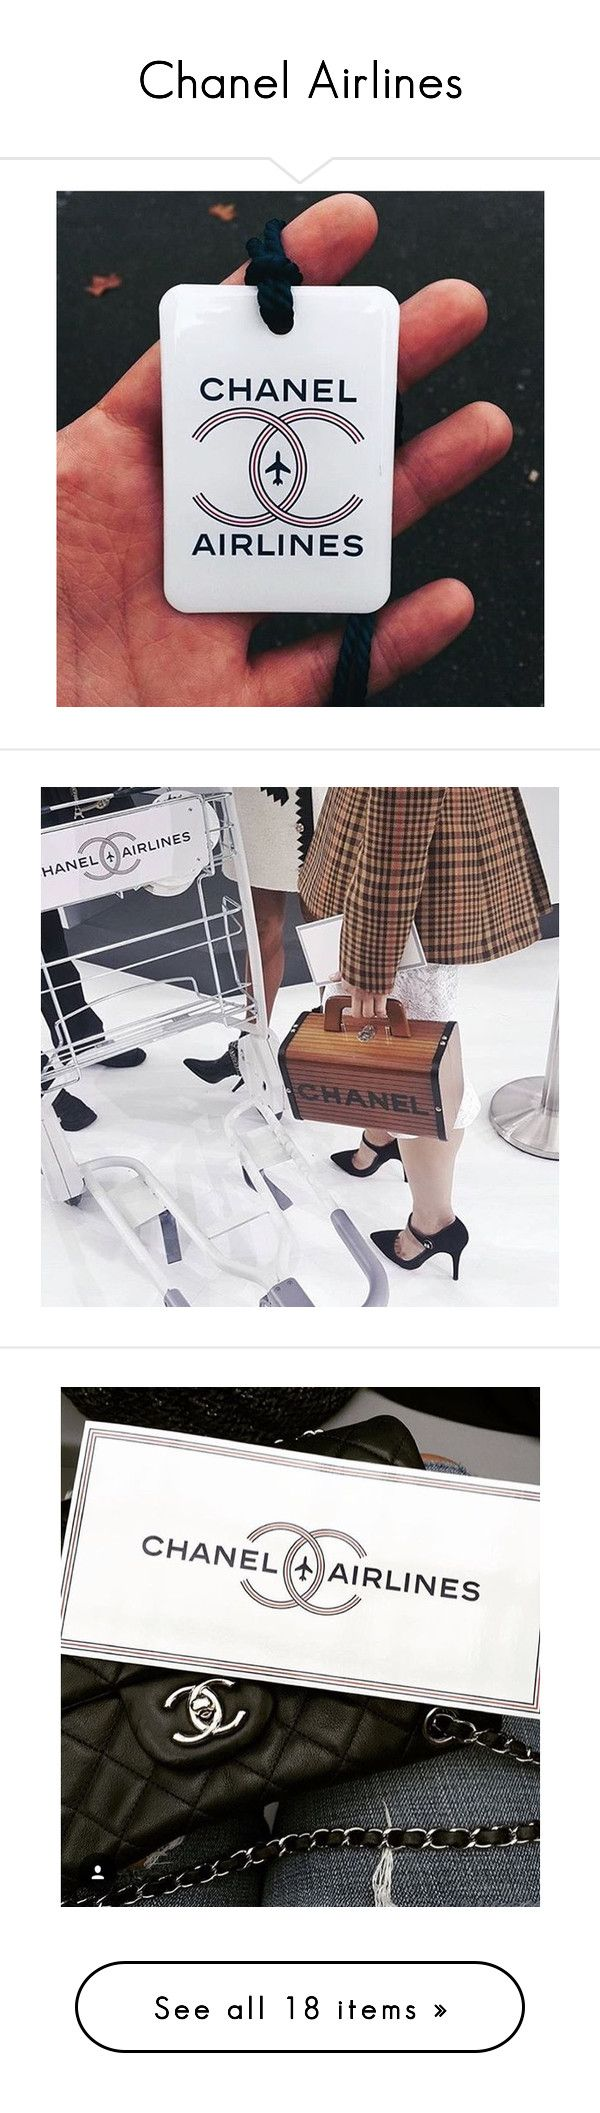 Chanel Airlines by kristina-susanto on Polyvore